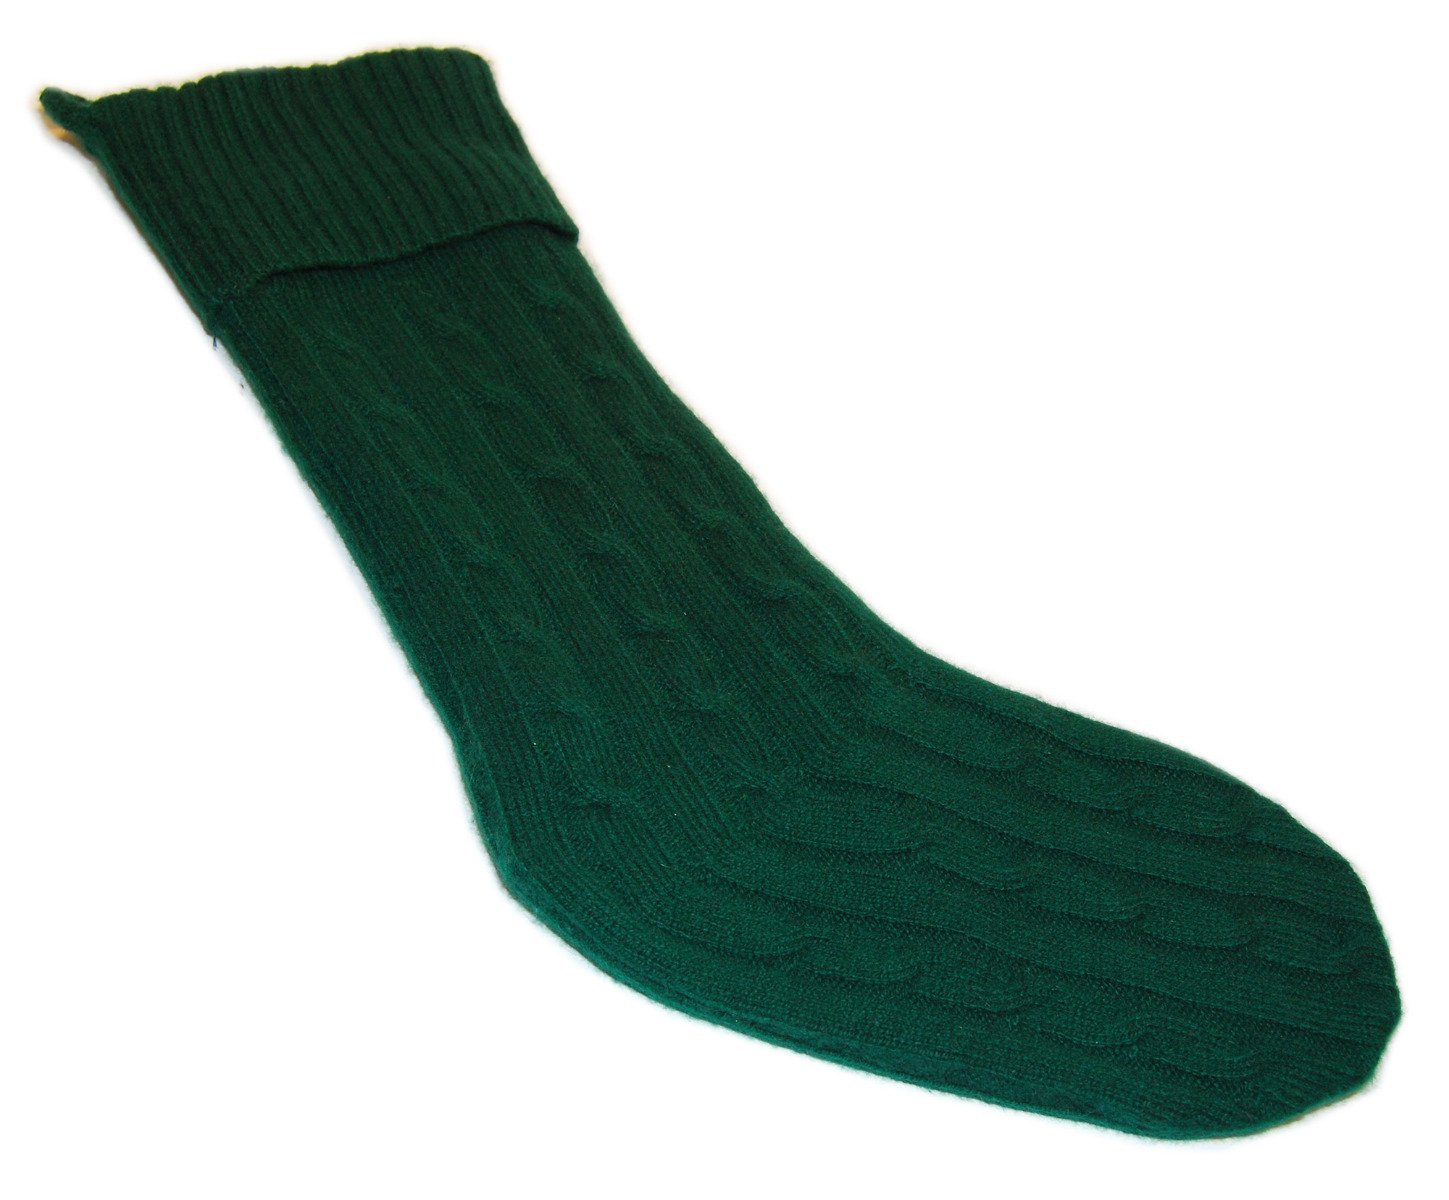 Polo Ralph Lauren Home Cable Cashmere Christmas Holiday Luxury Stocking Green